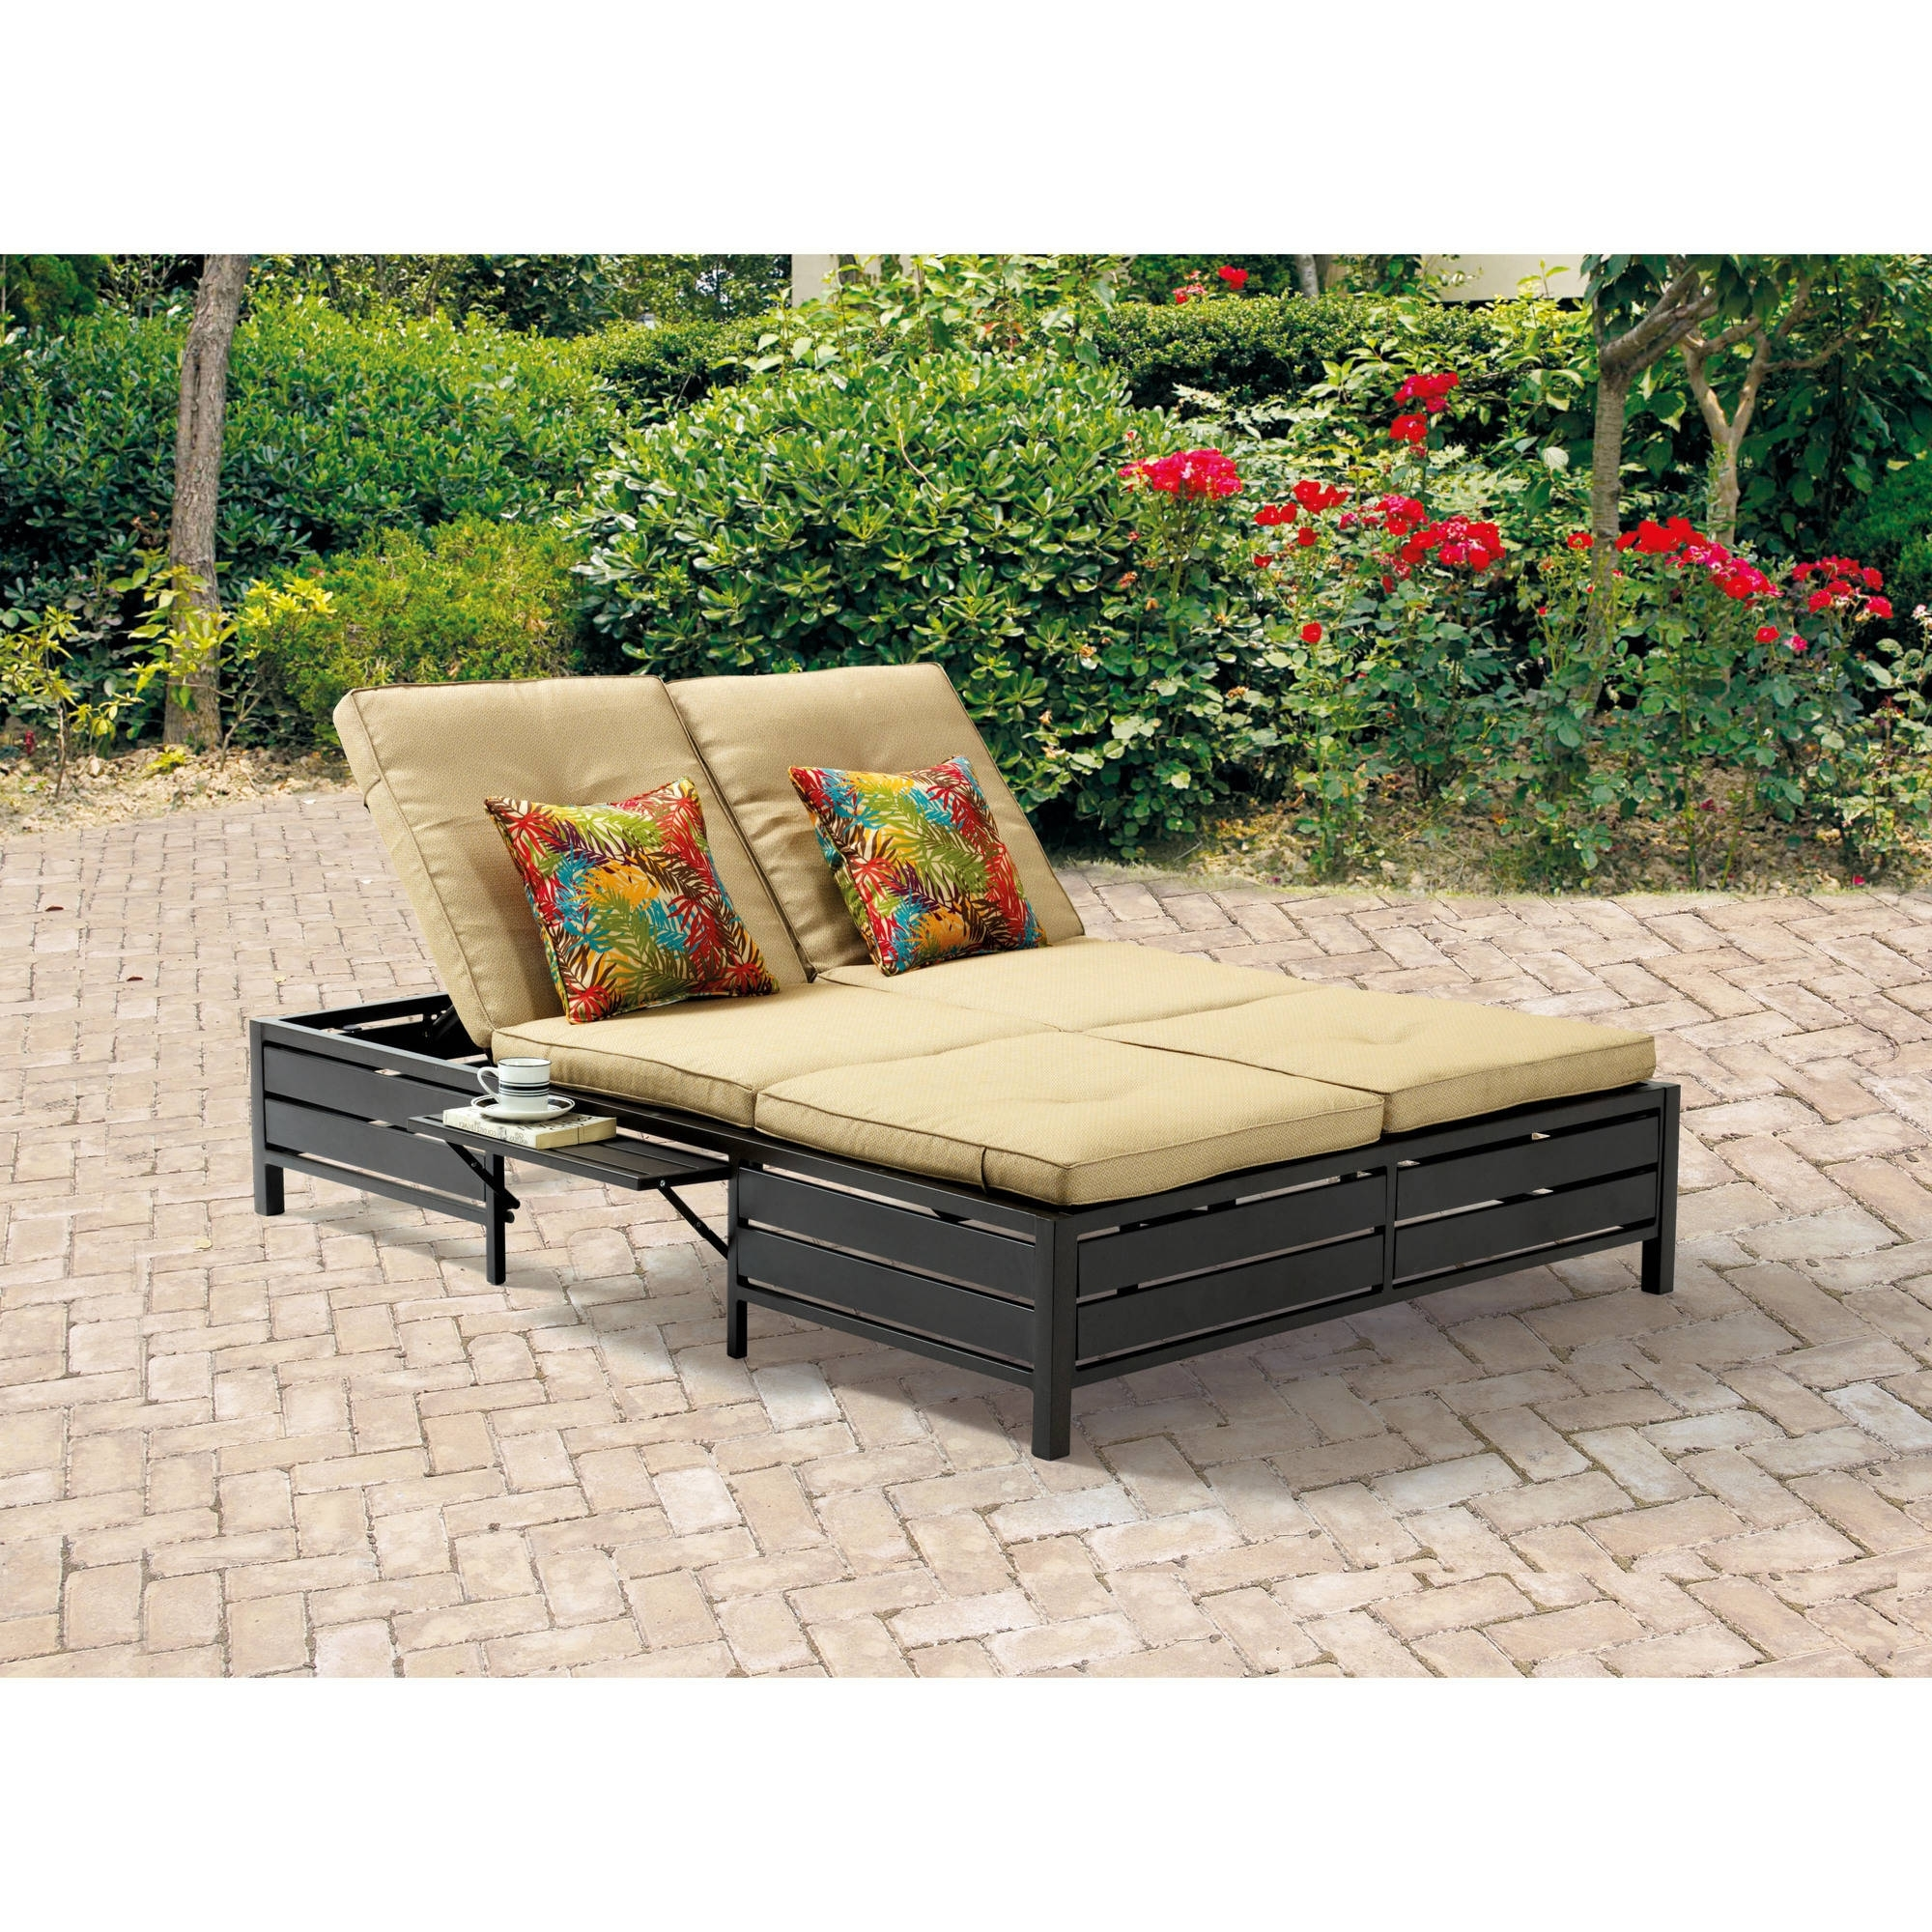 Mainstays Outdoor Double Chaise Lounger, Tan, Seats 2 – Walmart Regarding 2018 Walmart Chaises (View 6 of 15)